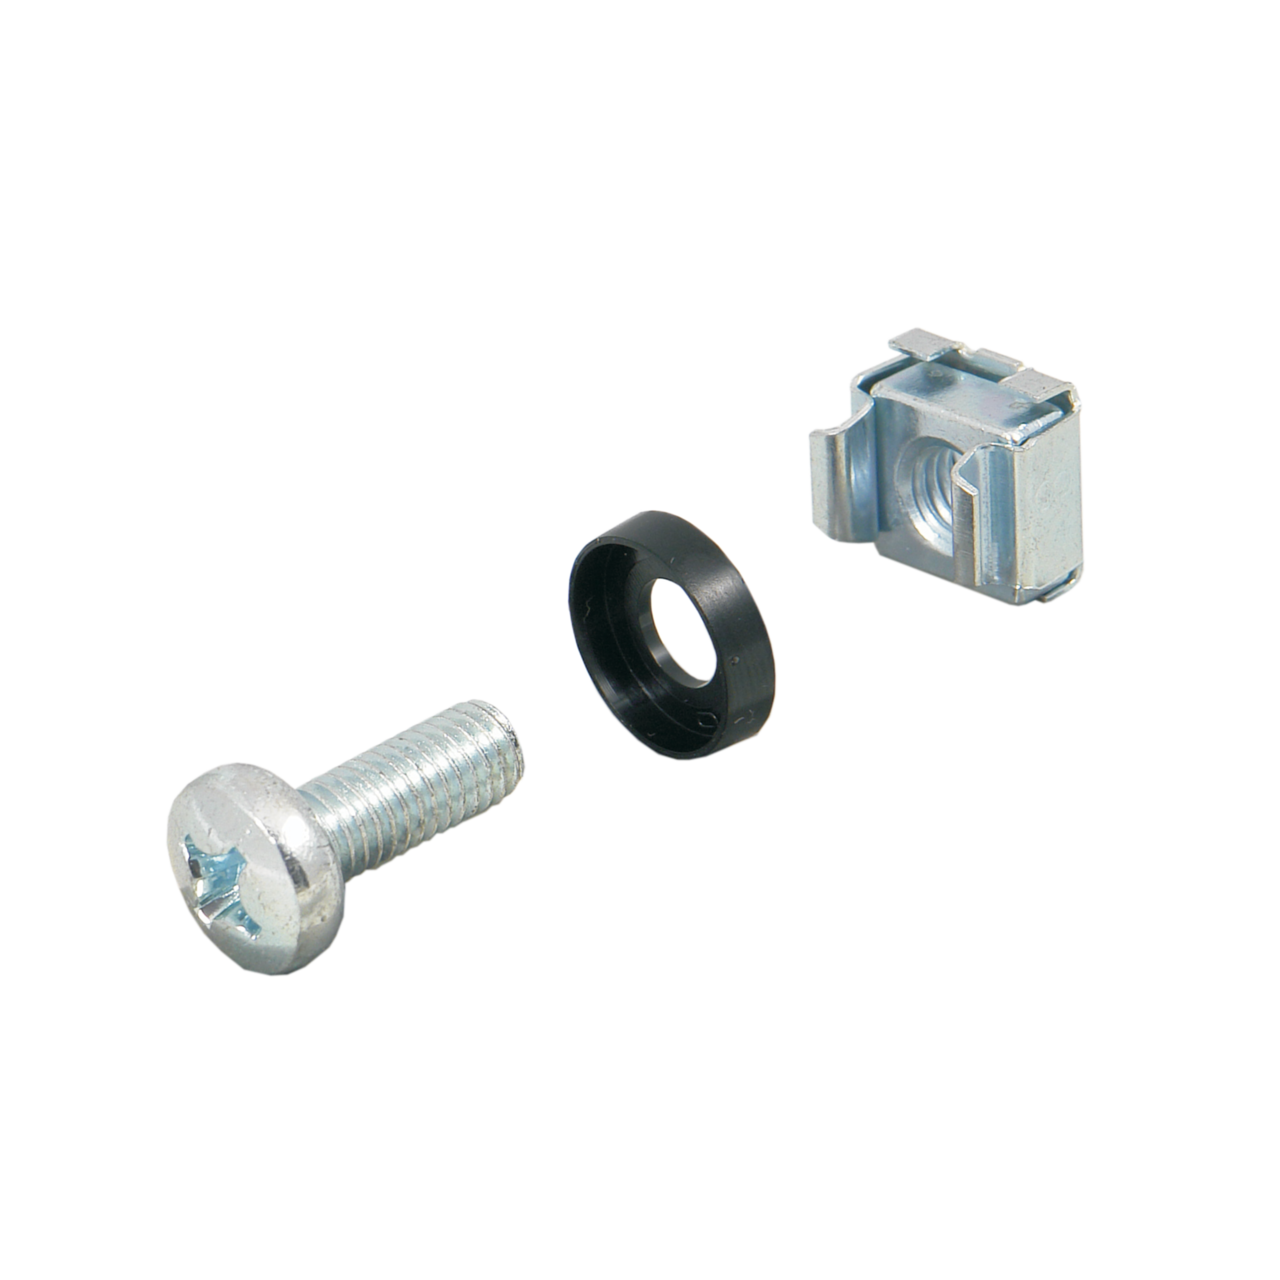 Imagen para Fixing materials kit, square nut M6 de Schroff - Norteamérica